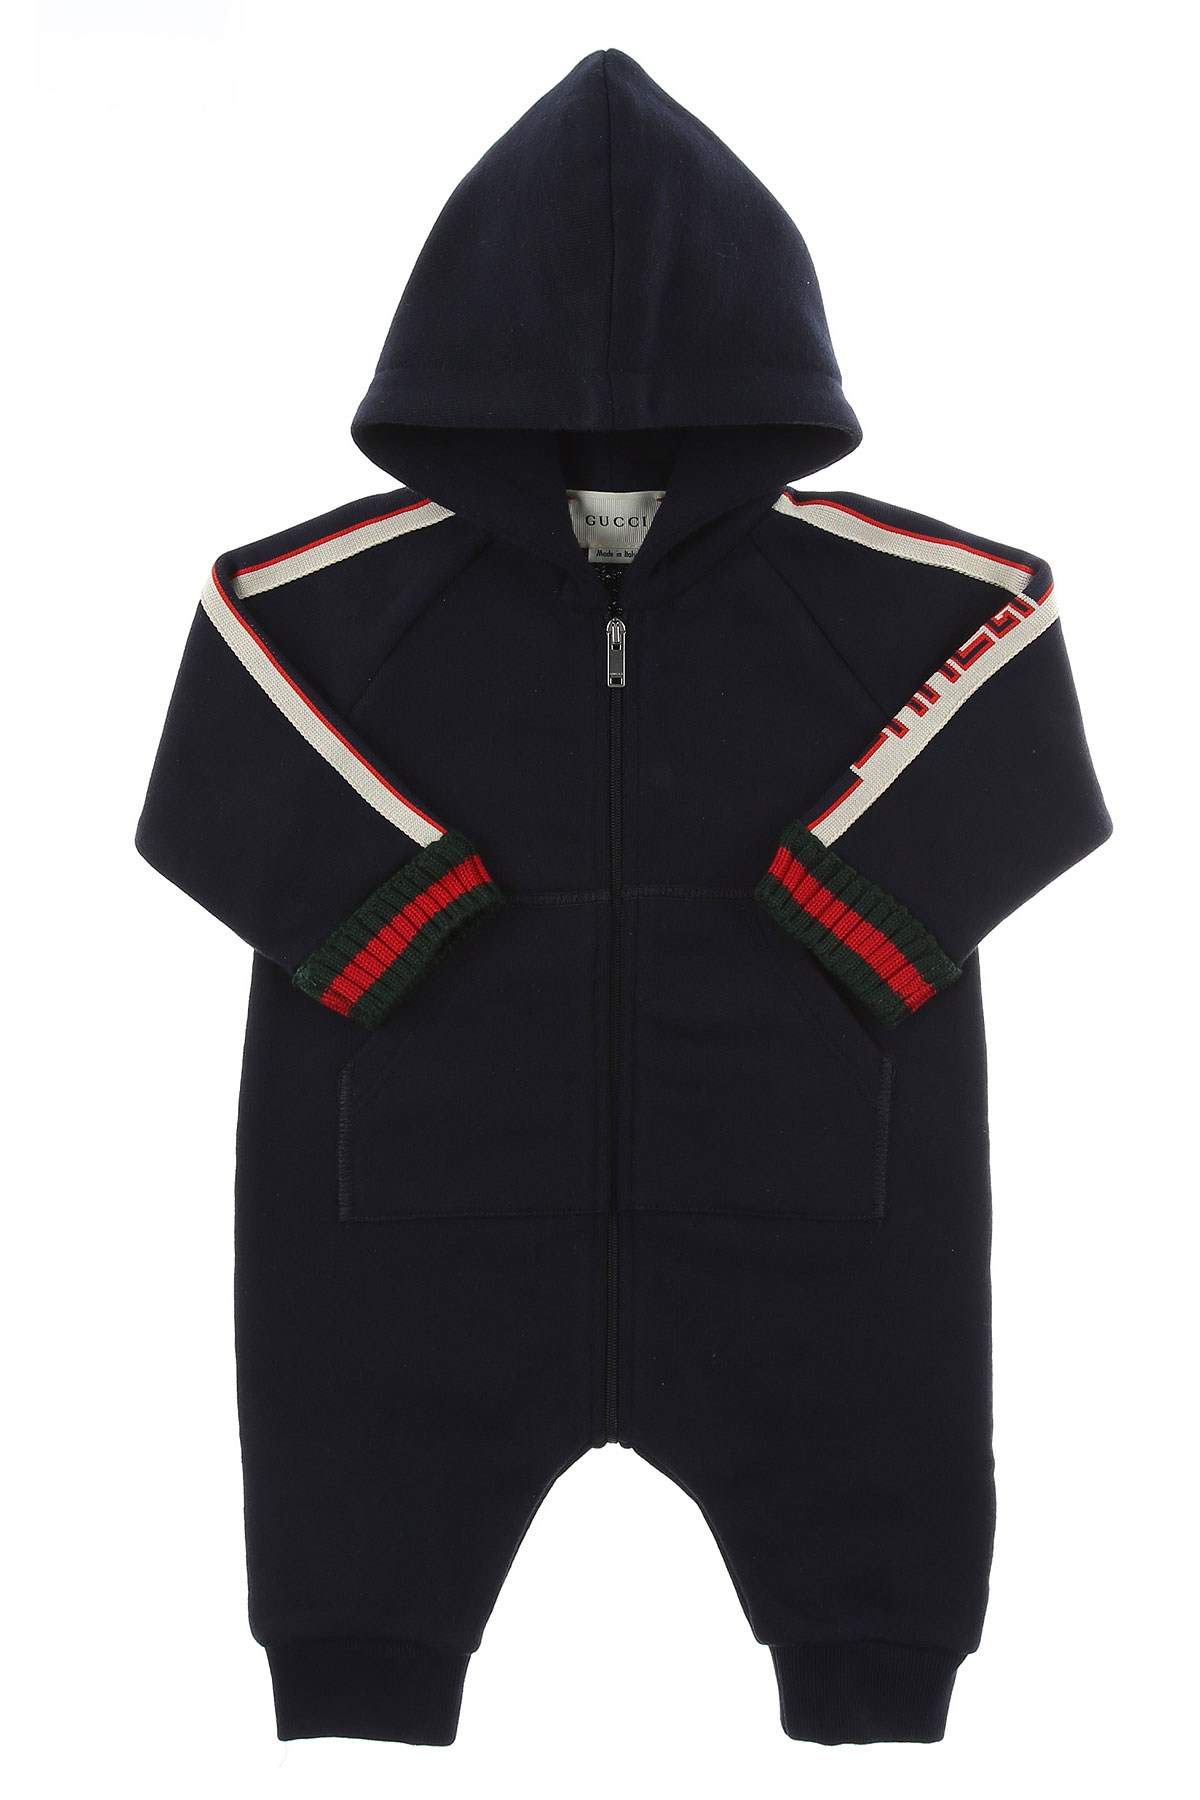 Image of Gucci Baby Bodysuits & Onesies for Boys, Blue, Cotton, 2017, 3M 6M 9M